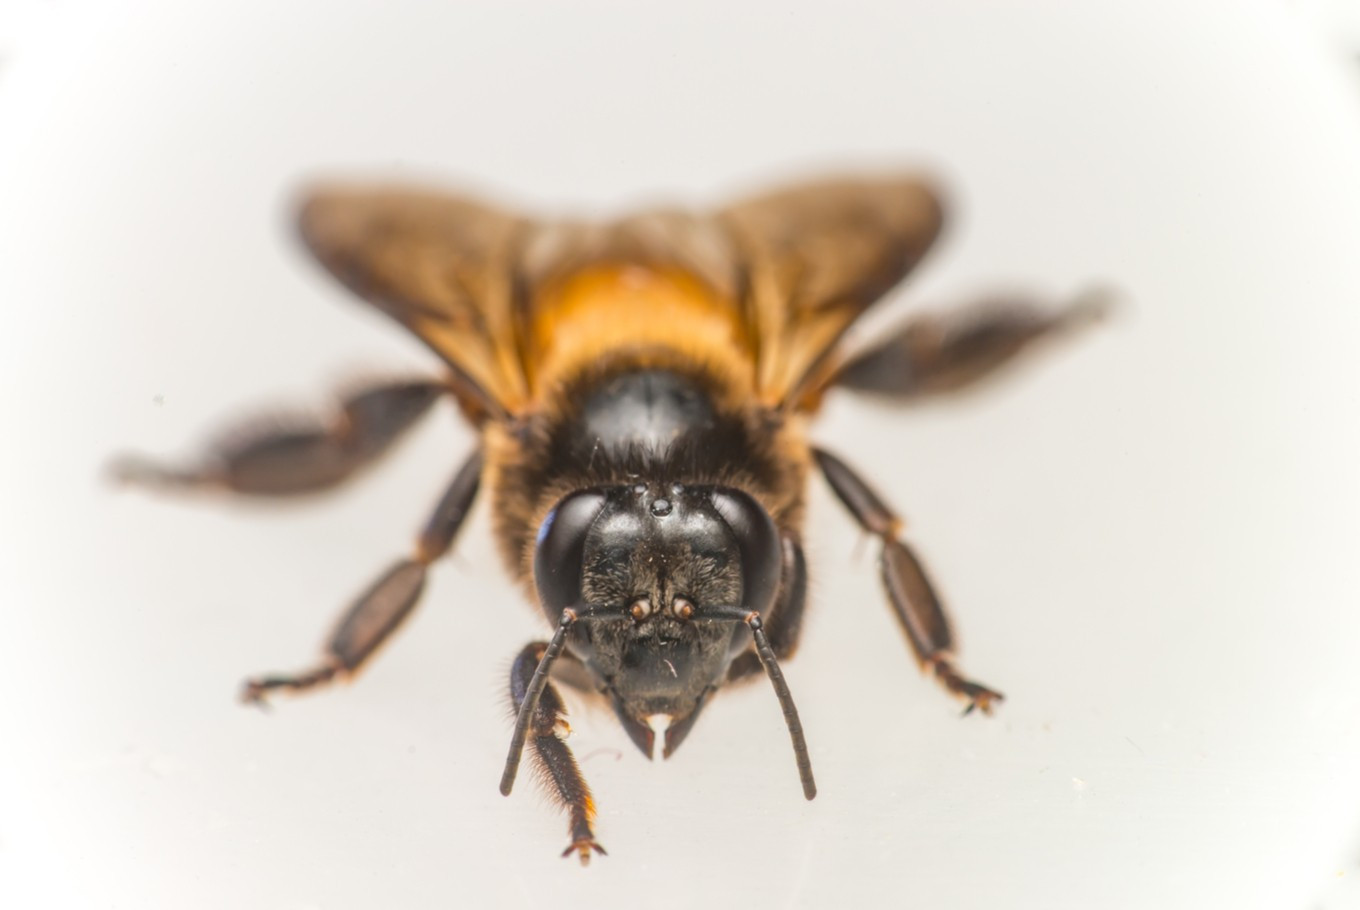 Giant bee: What can we do to keep it alive?